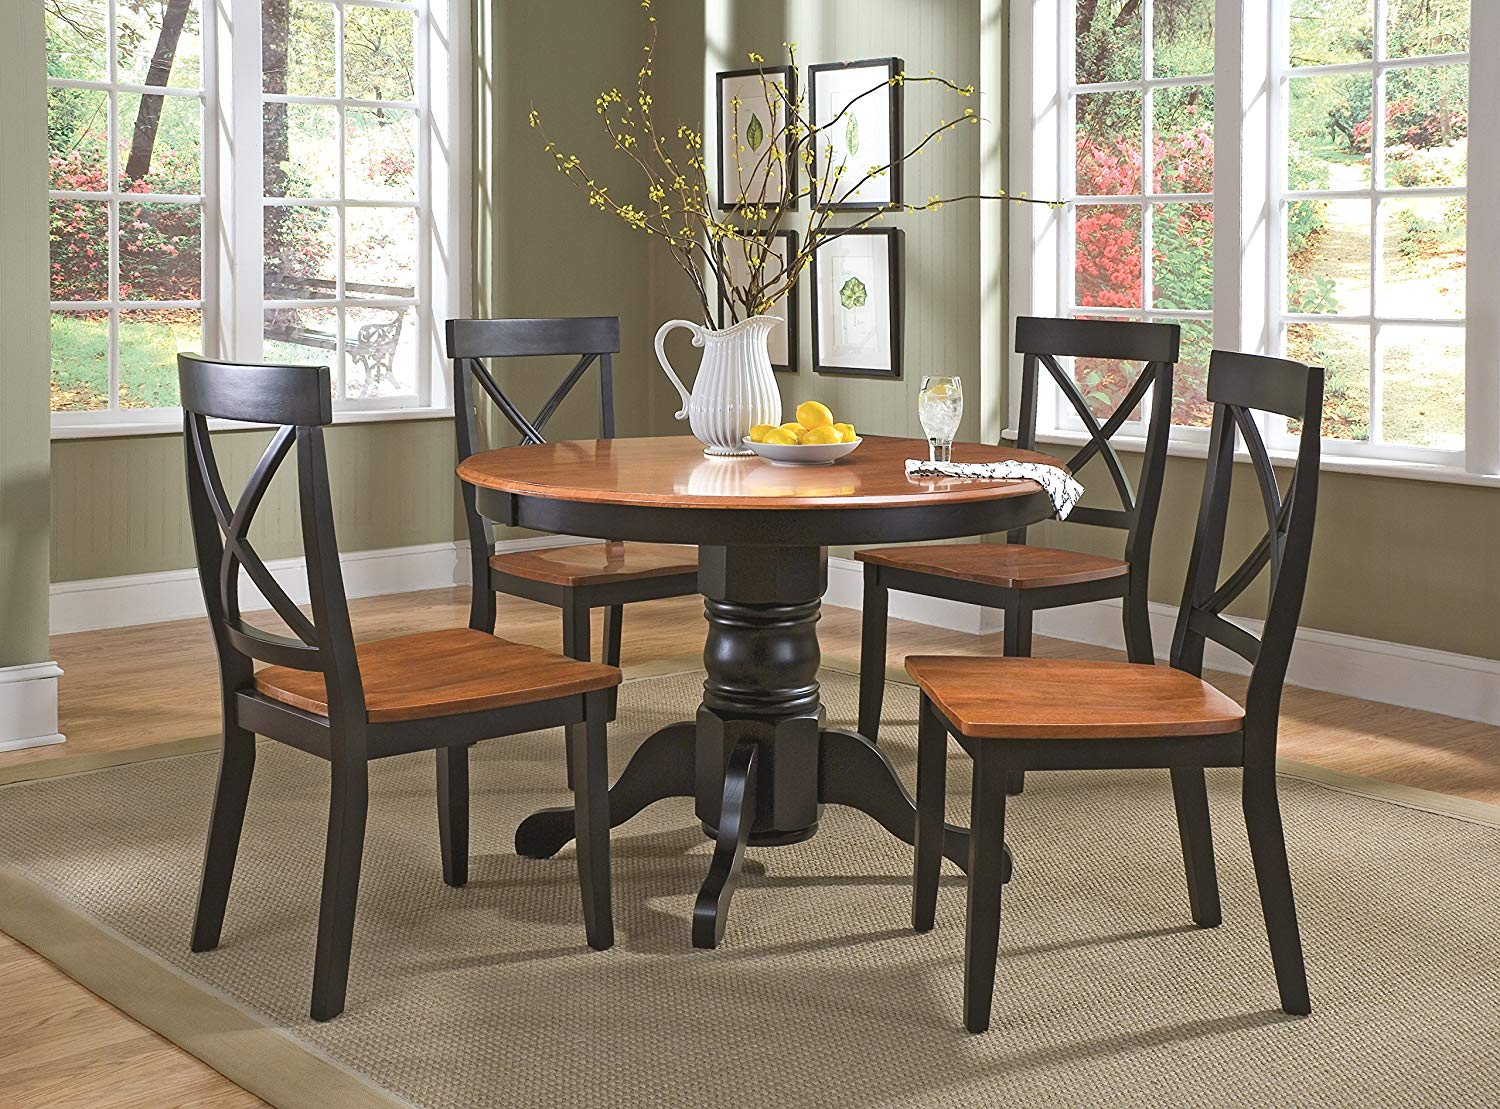 The Best Dining Table Sets with Chairs in 2019 - Trendy ...